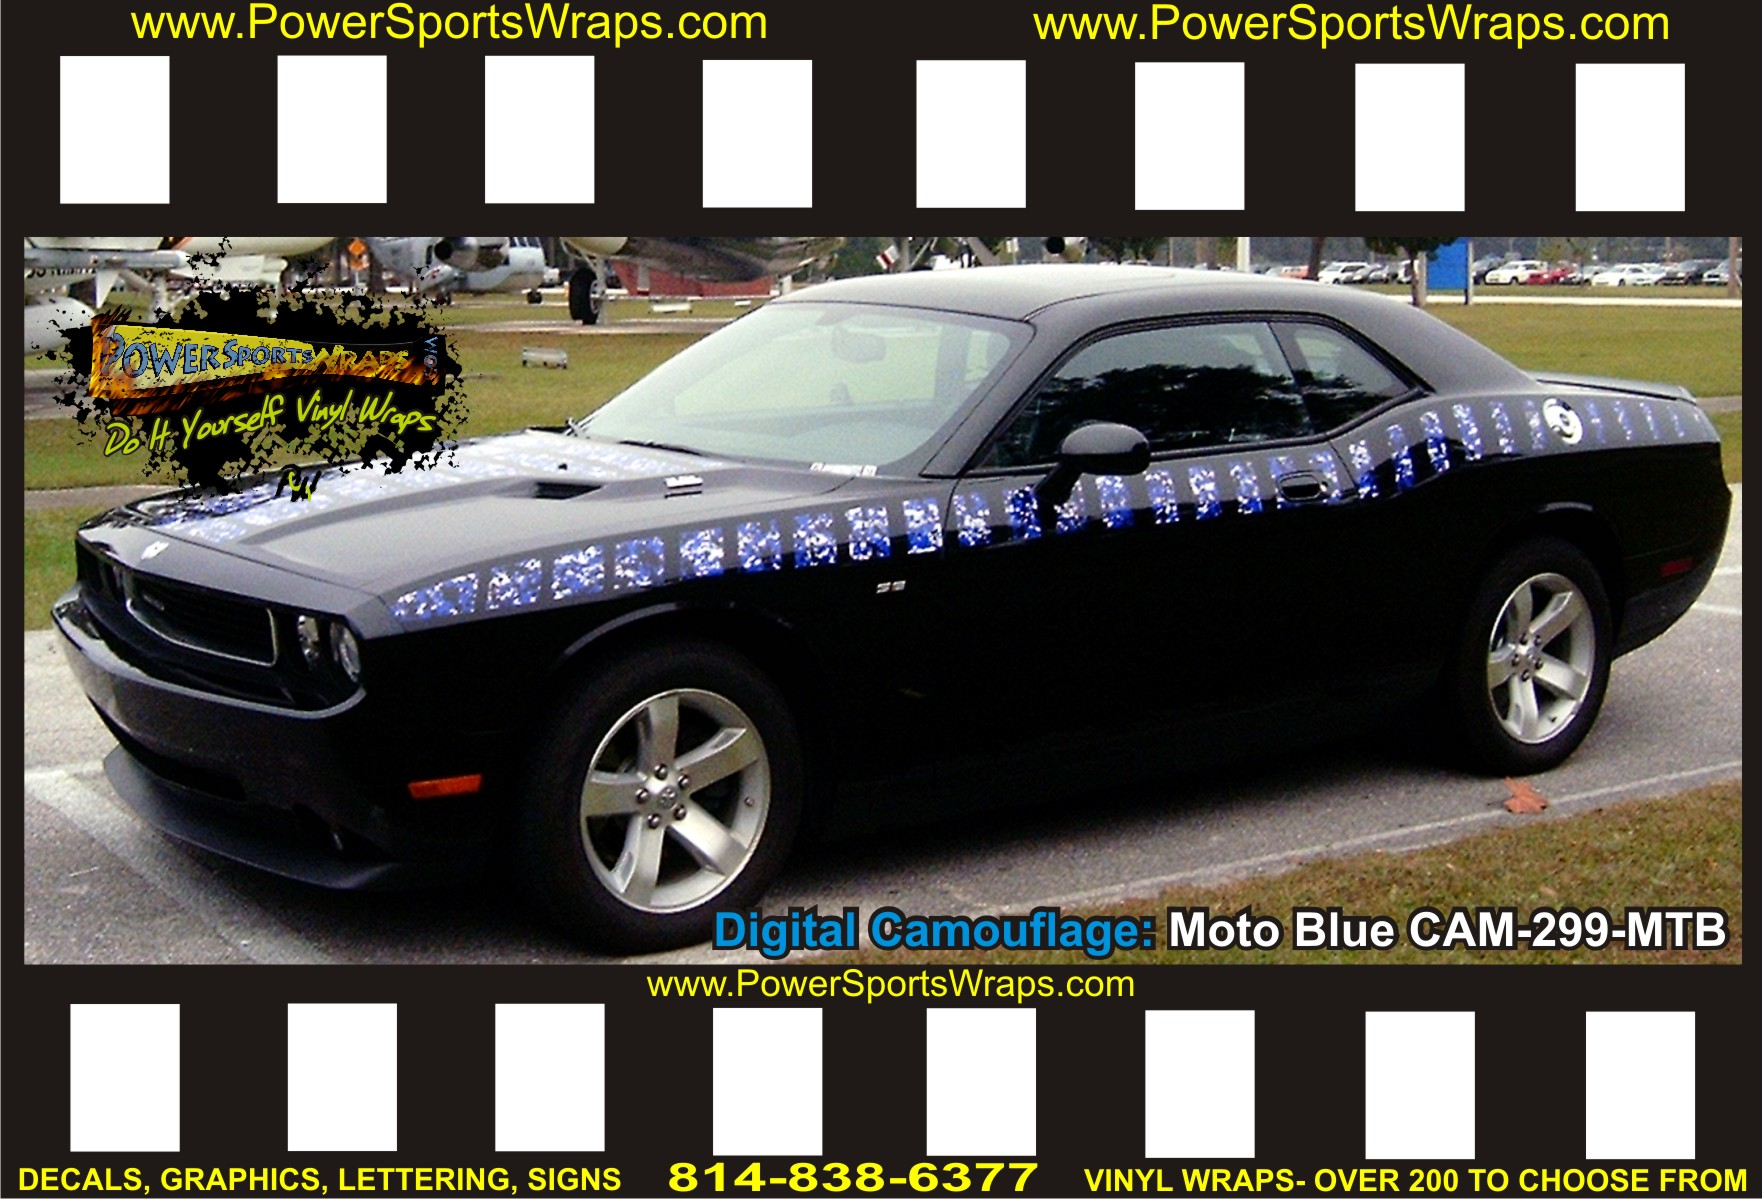 2010 Dodge Challenger Custom Digital Camo Graphics Moto Blue